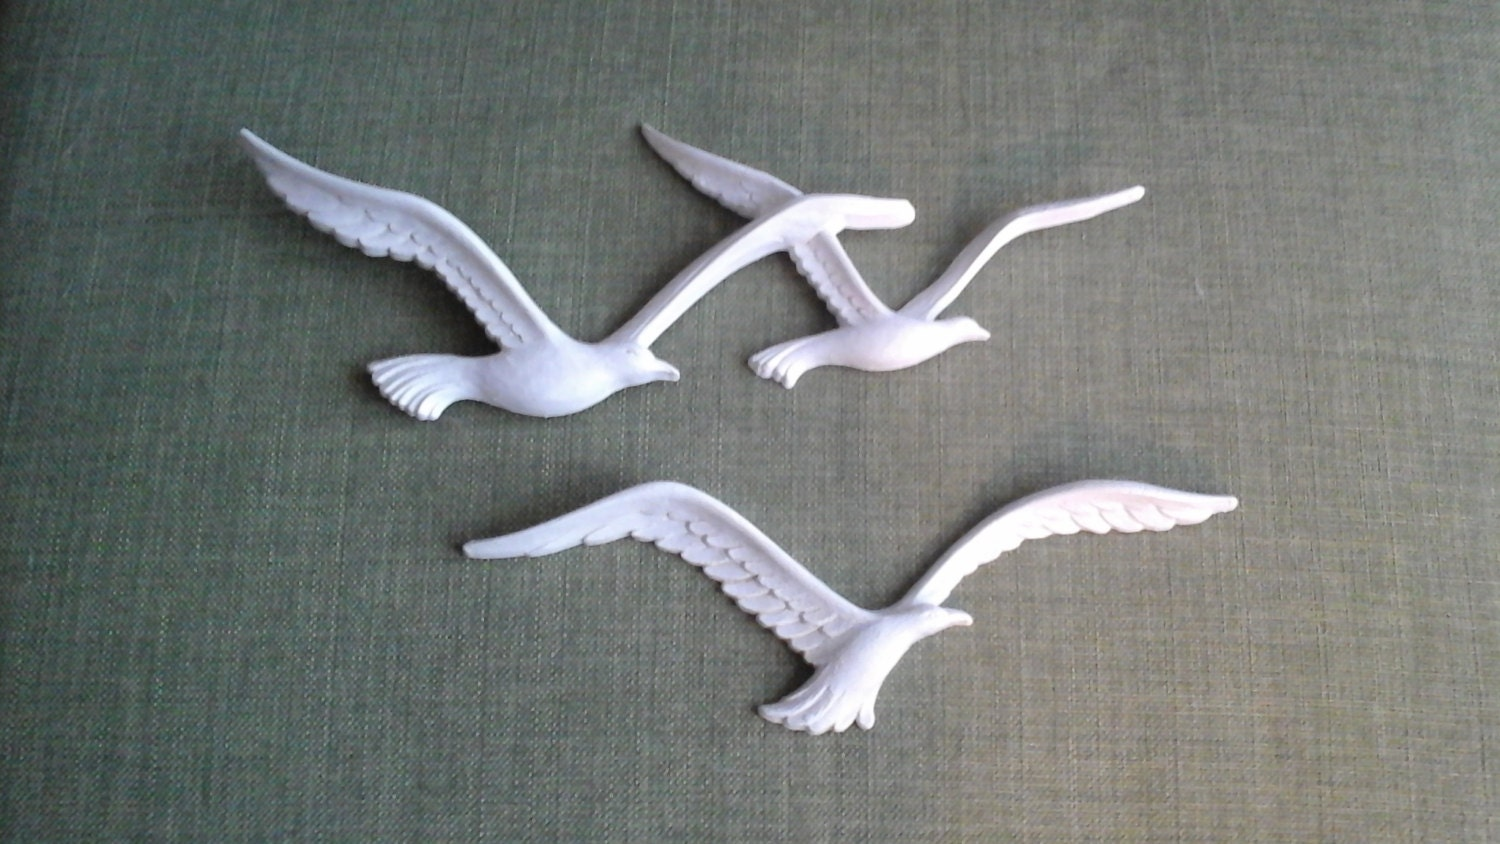 Homco seagulls wall decor plastic resin seagulls from the 70s for Resin wall art